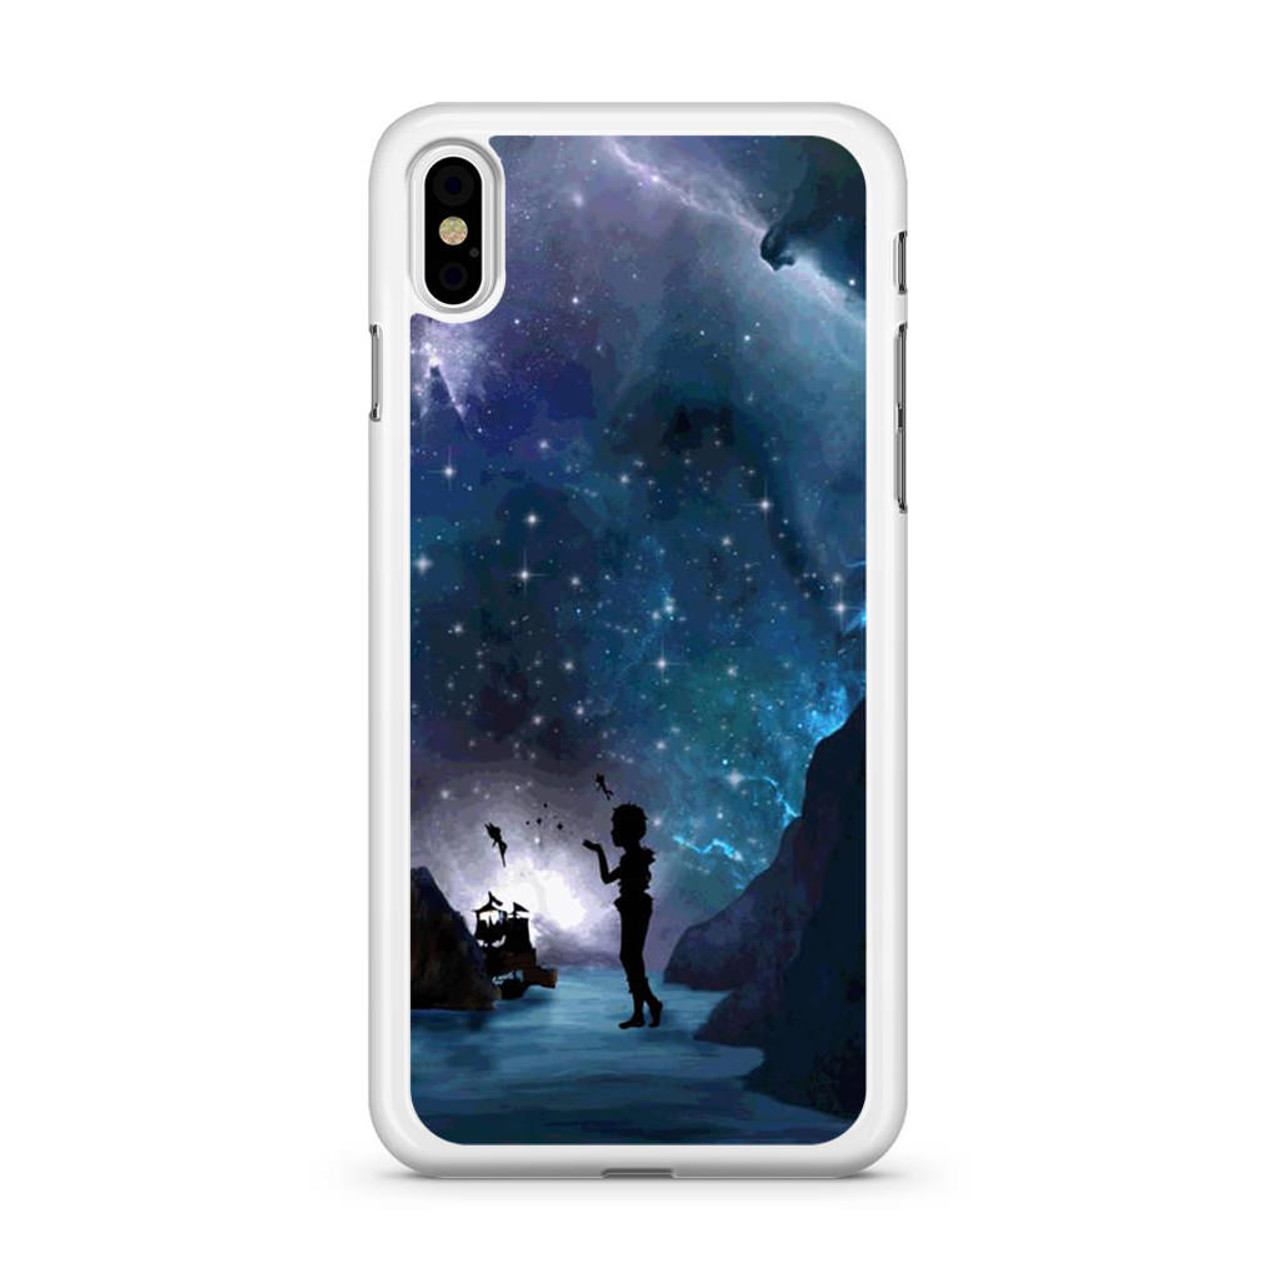 Neverland Galaxy iphone 11 case